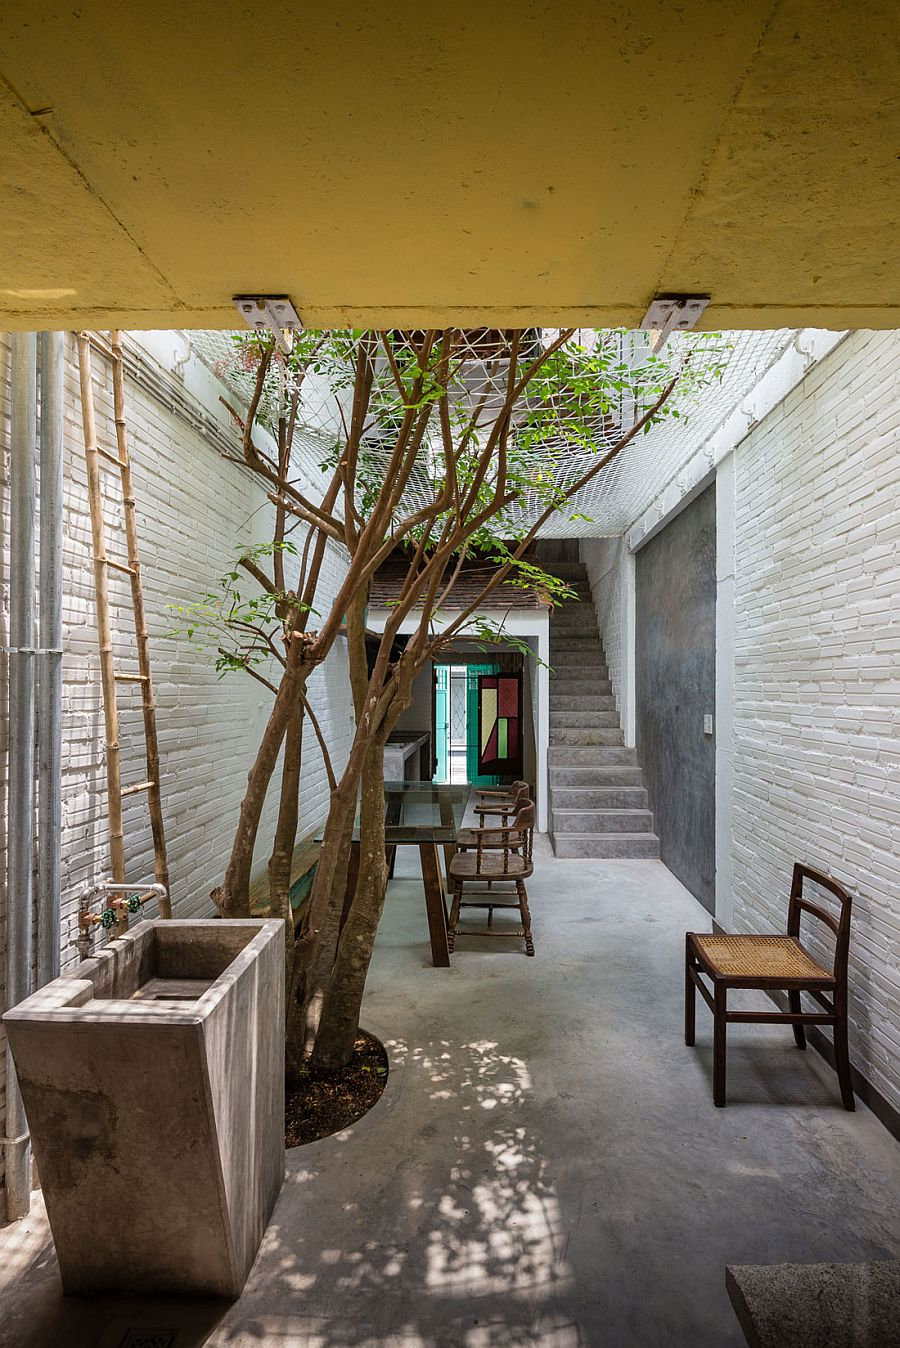 Natural greenery becomes an integral part of the interior